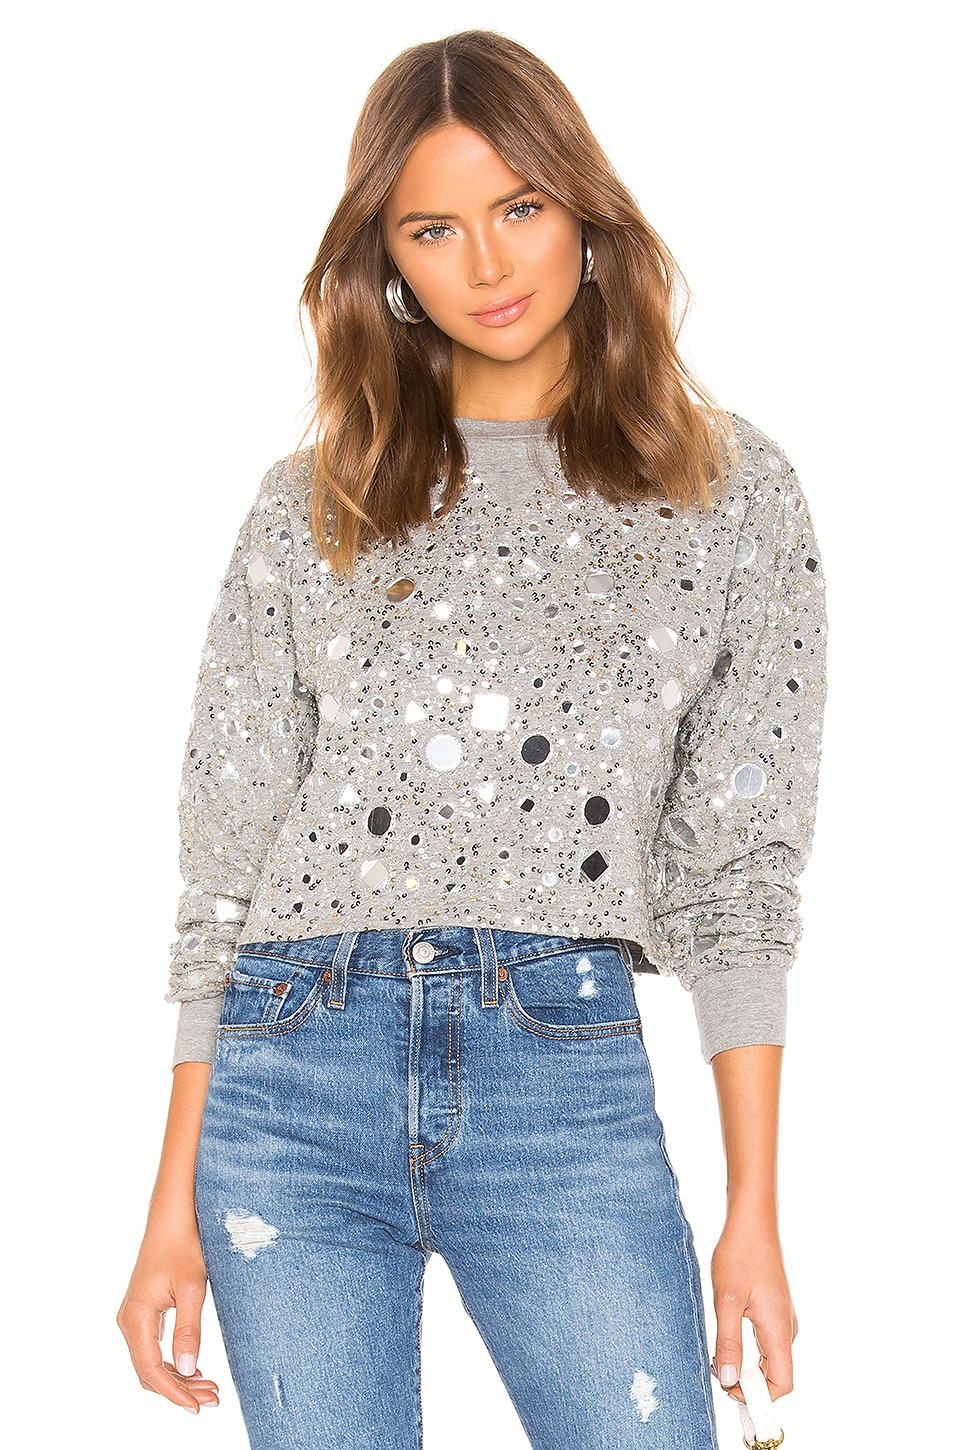 House of Harlow 1960 x REVOLVE Ale Pullover in Heather Grey